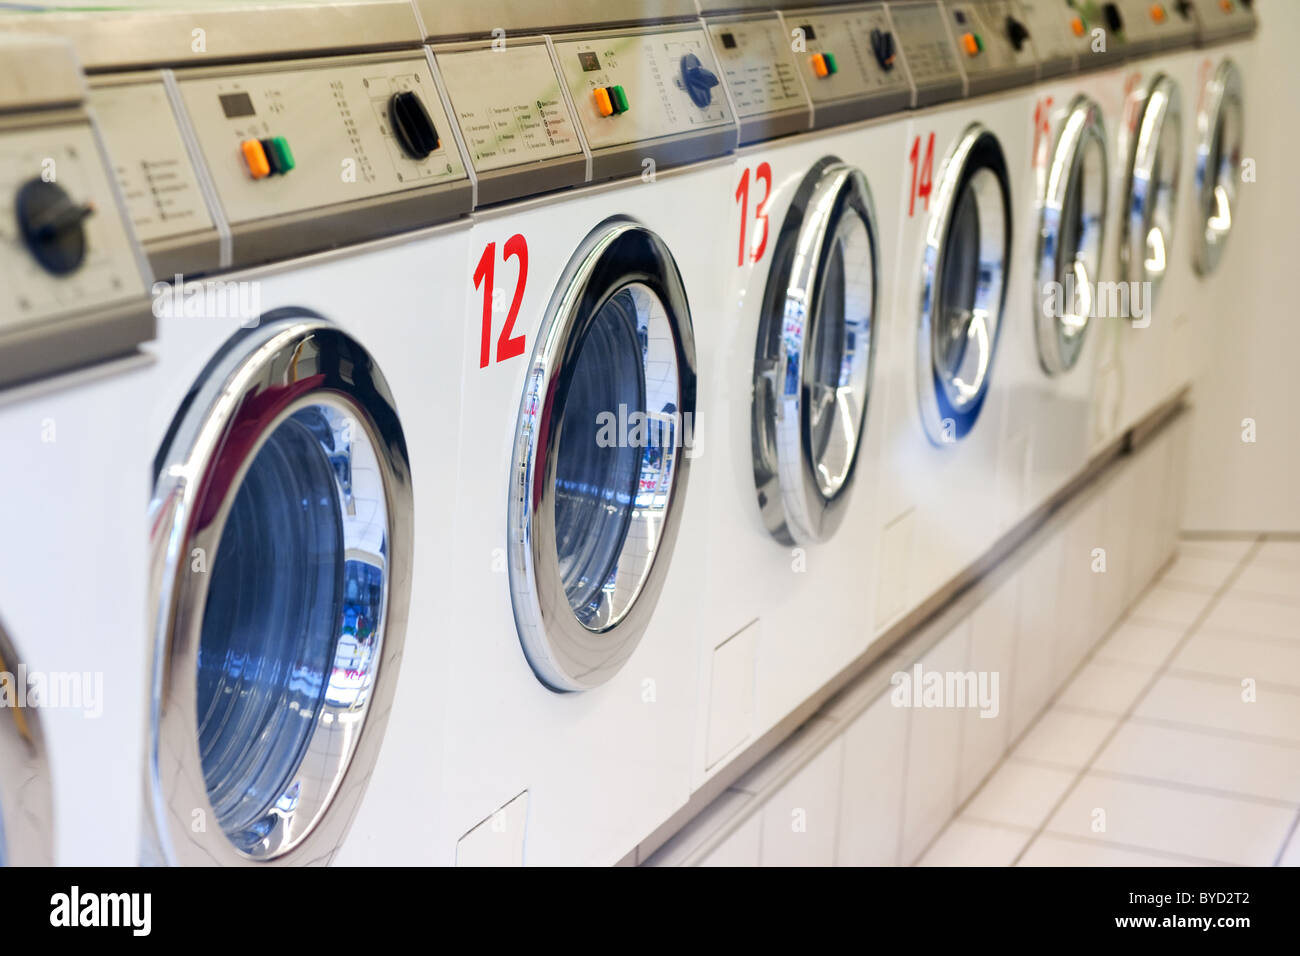 Laundromats stock photos laundromats stock images alamy many washing machines in a row for the laundry stock image solutioingenieria Images